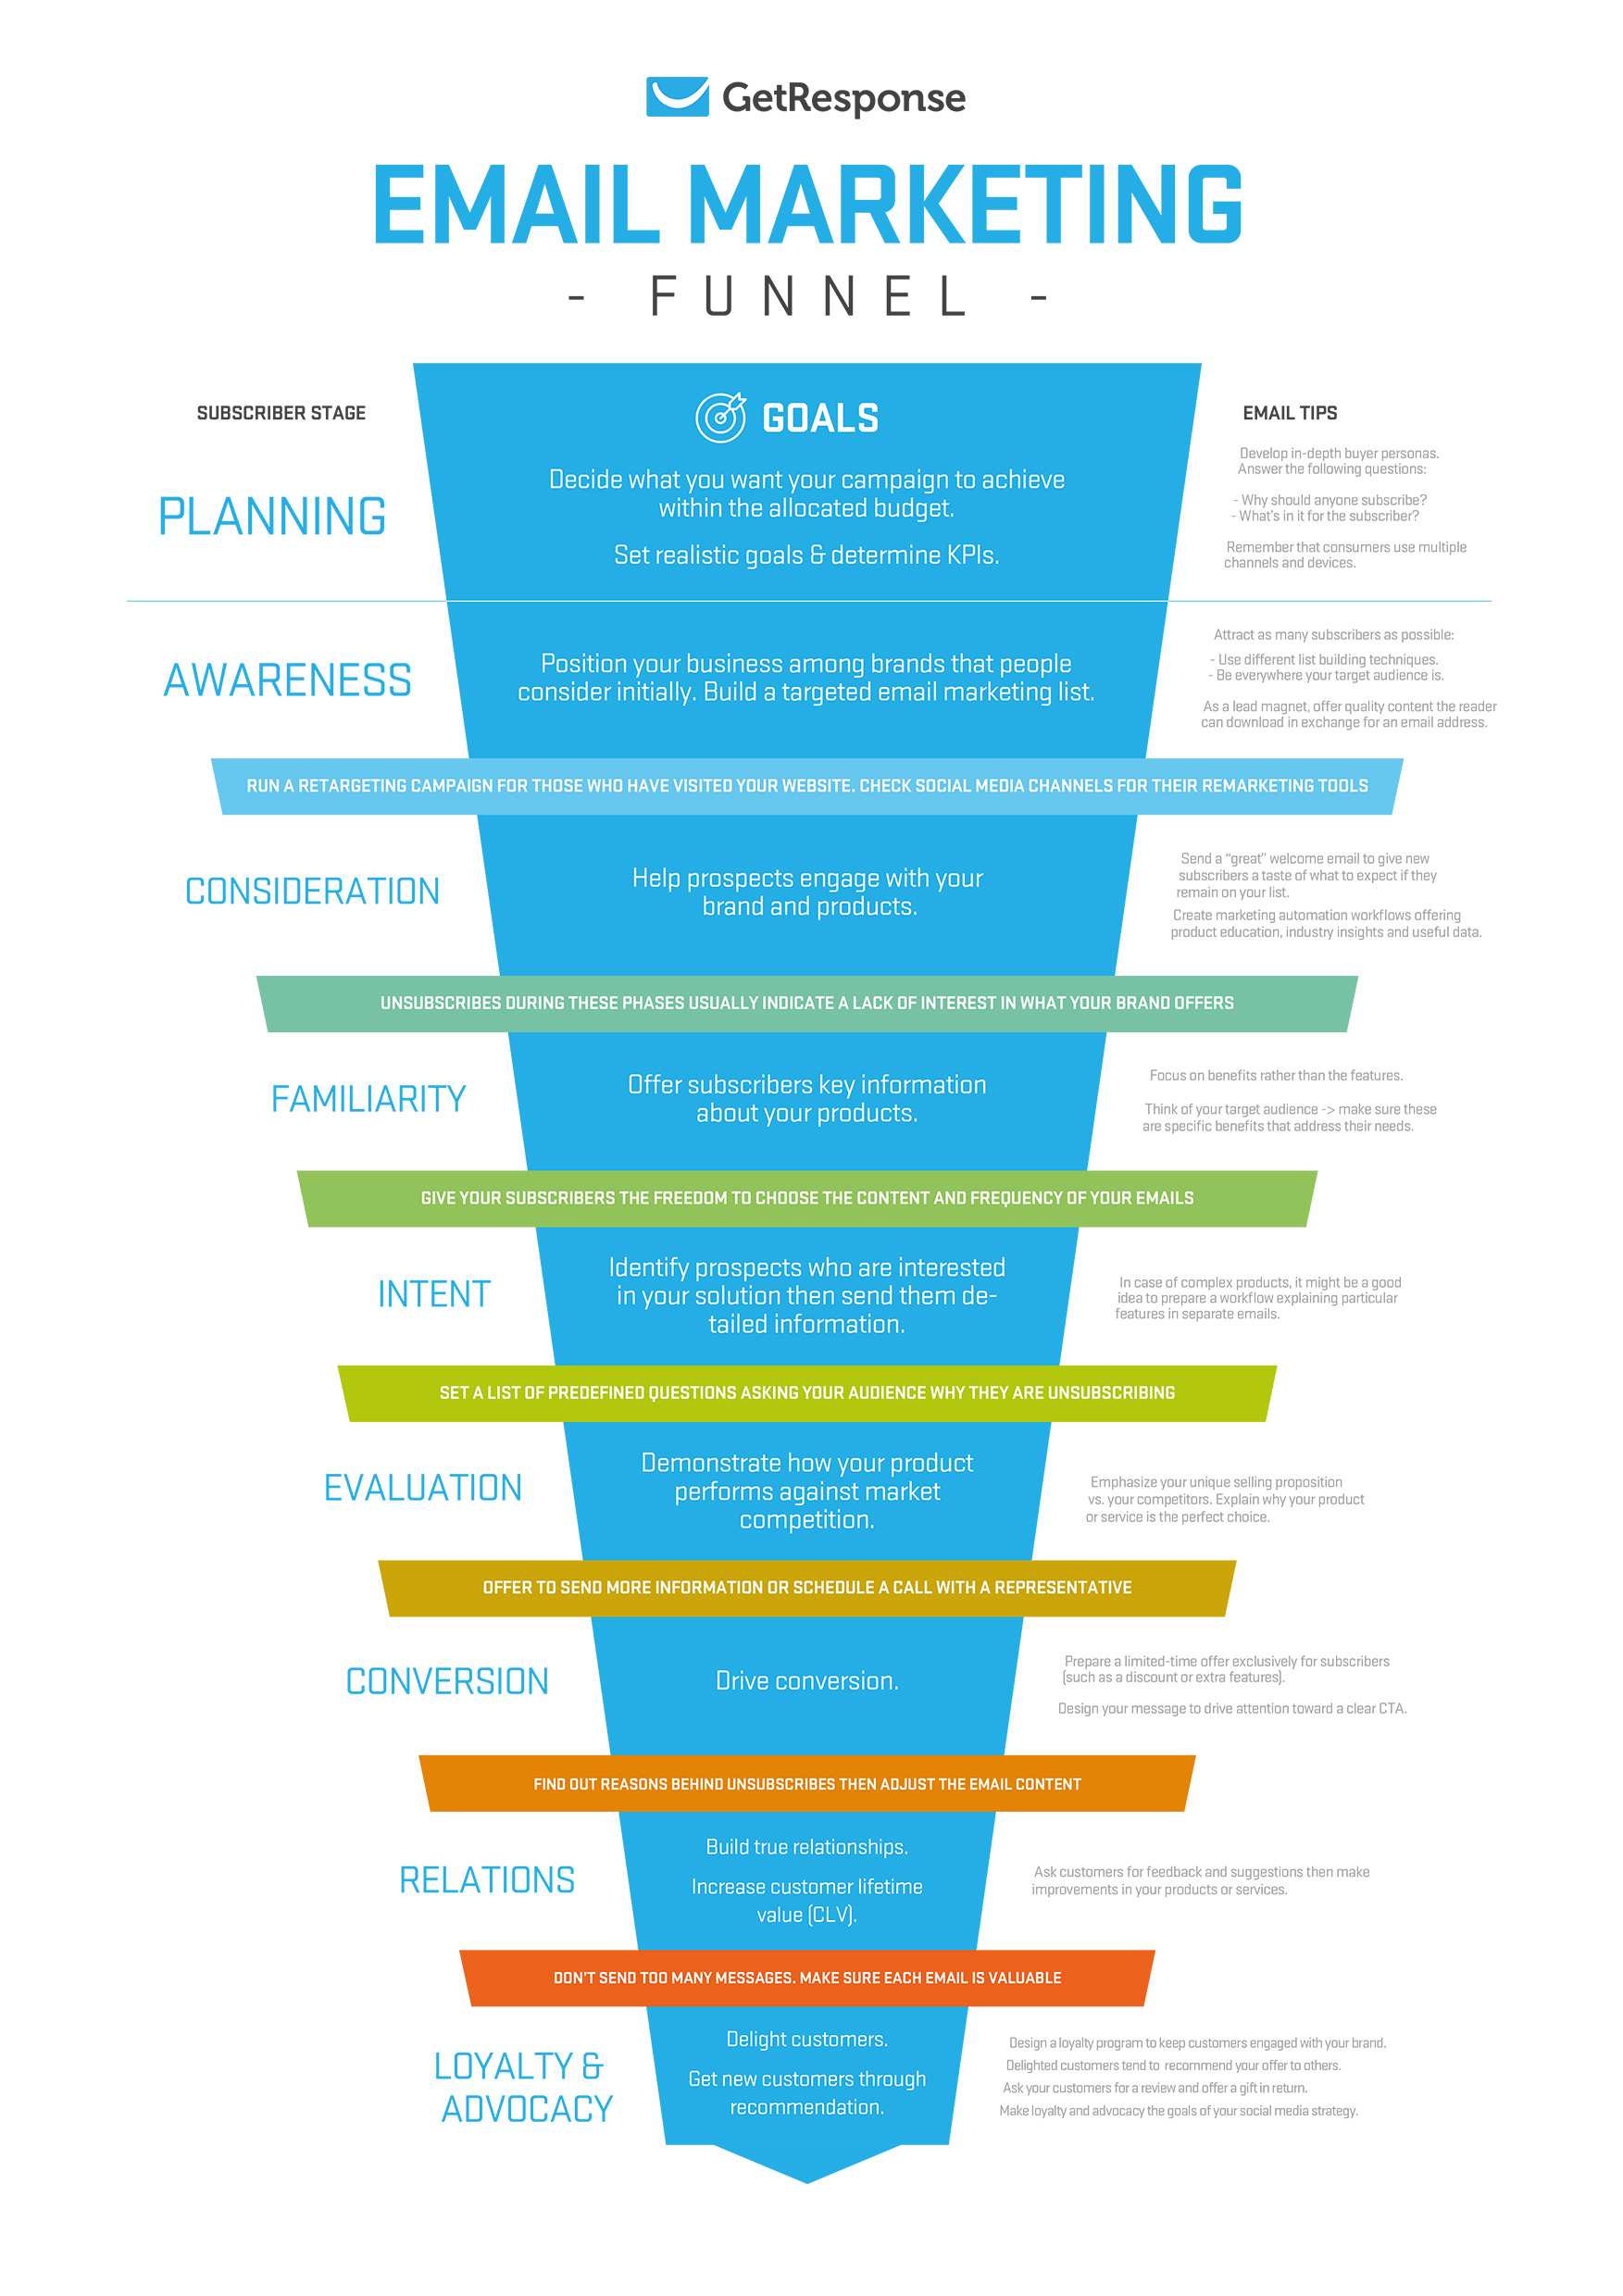 An Email Marketing Funnel For Planning Your Subscriber Journey.